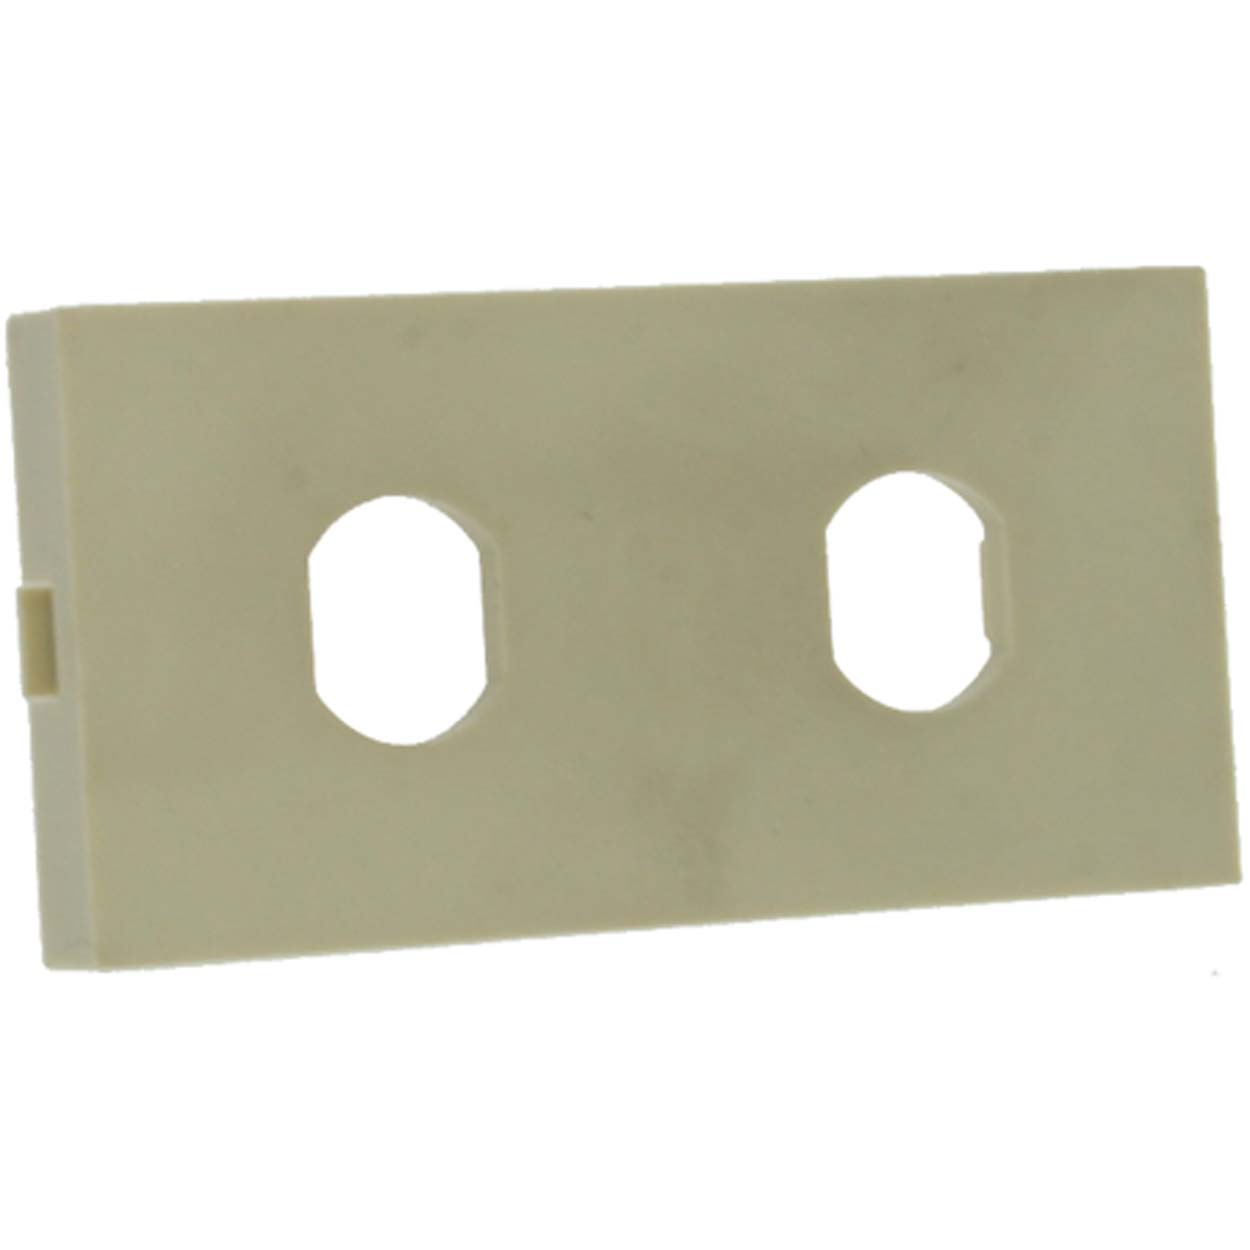 Dual ST Snap-in Module, for MD Series, Ivory